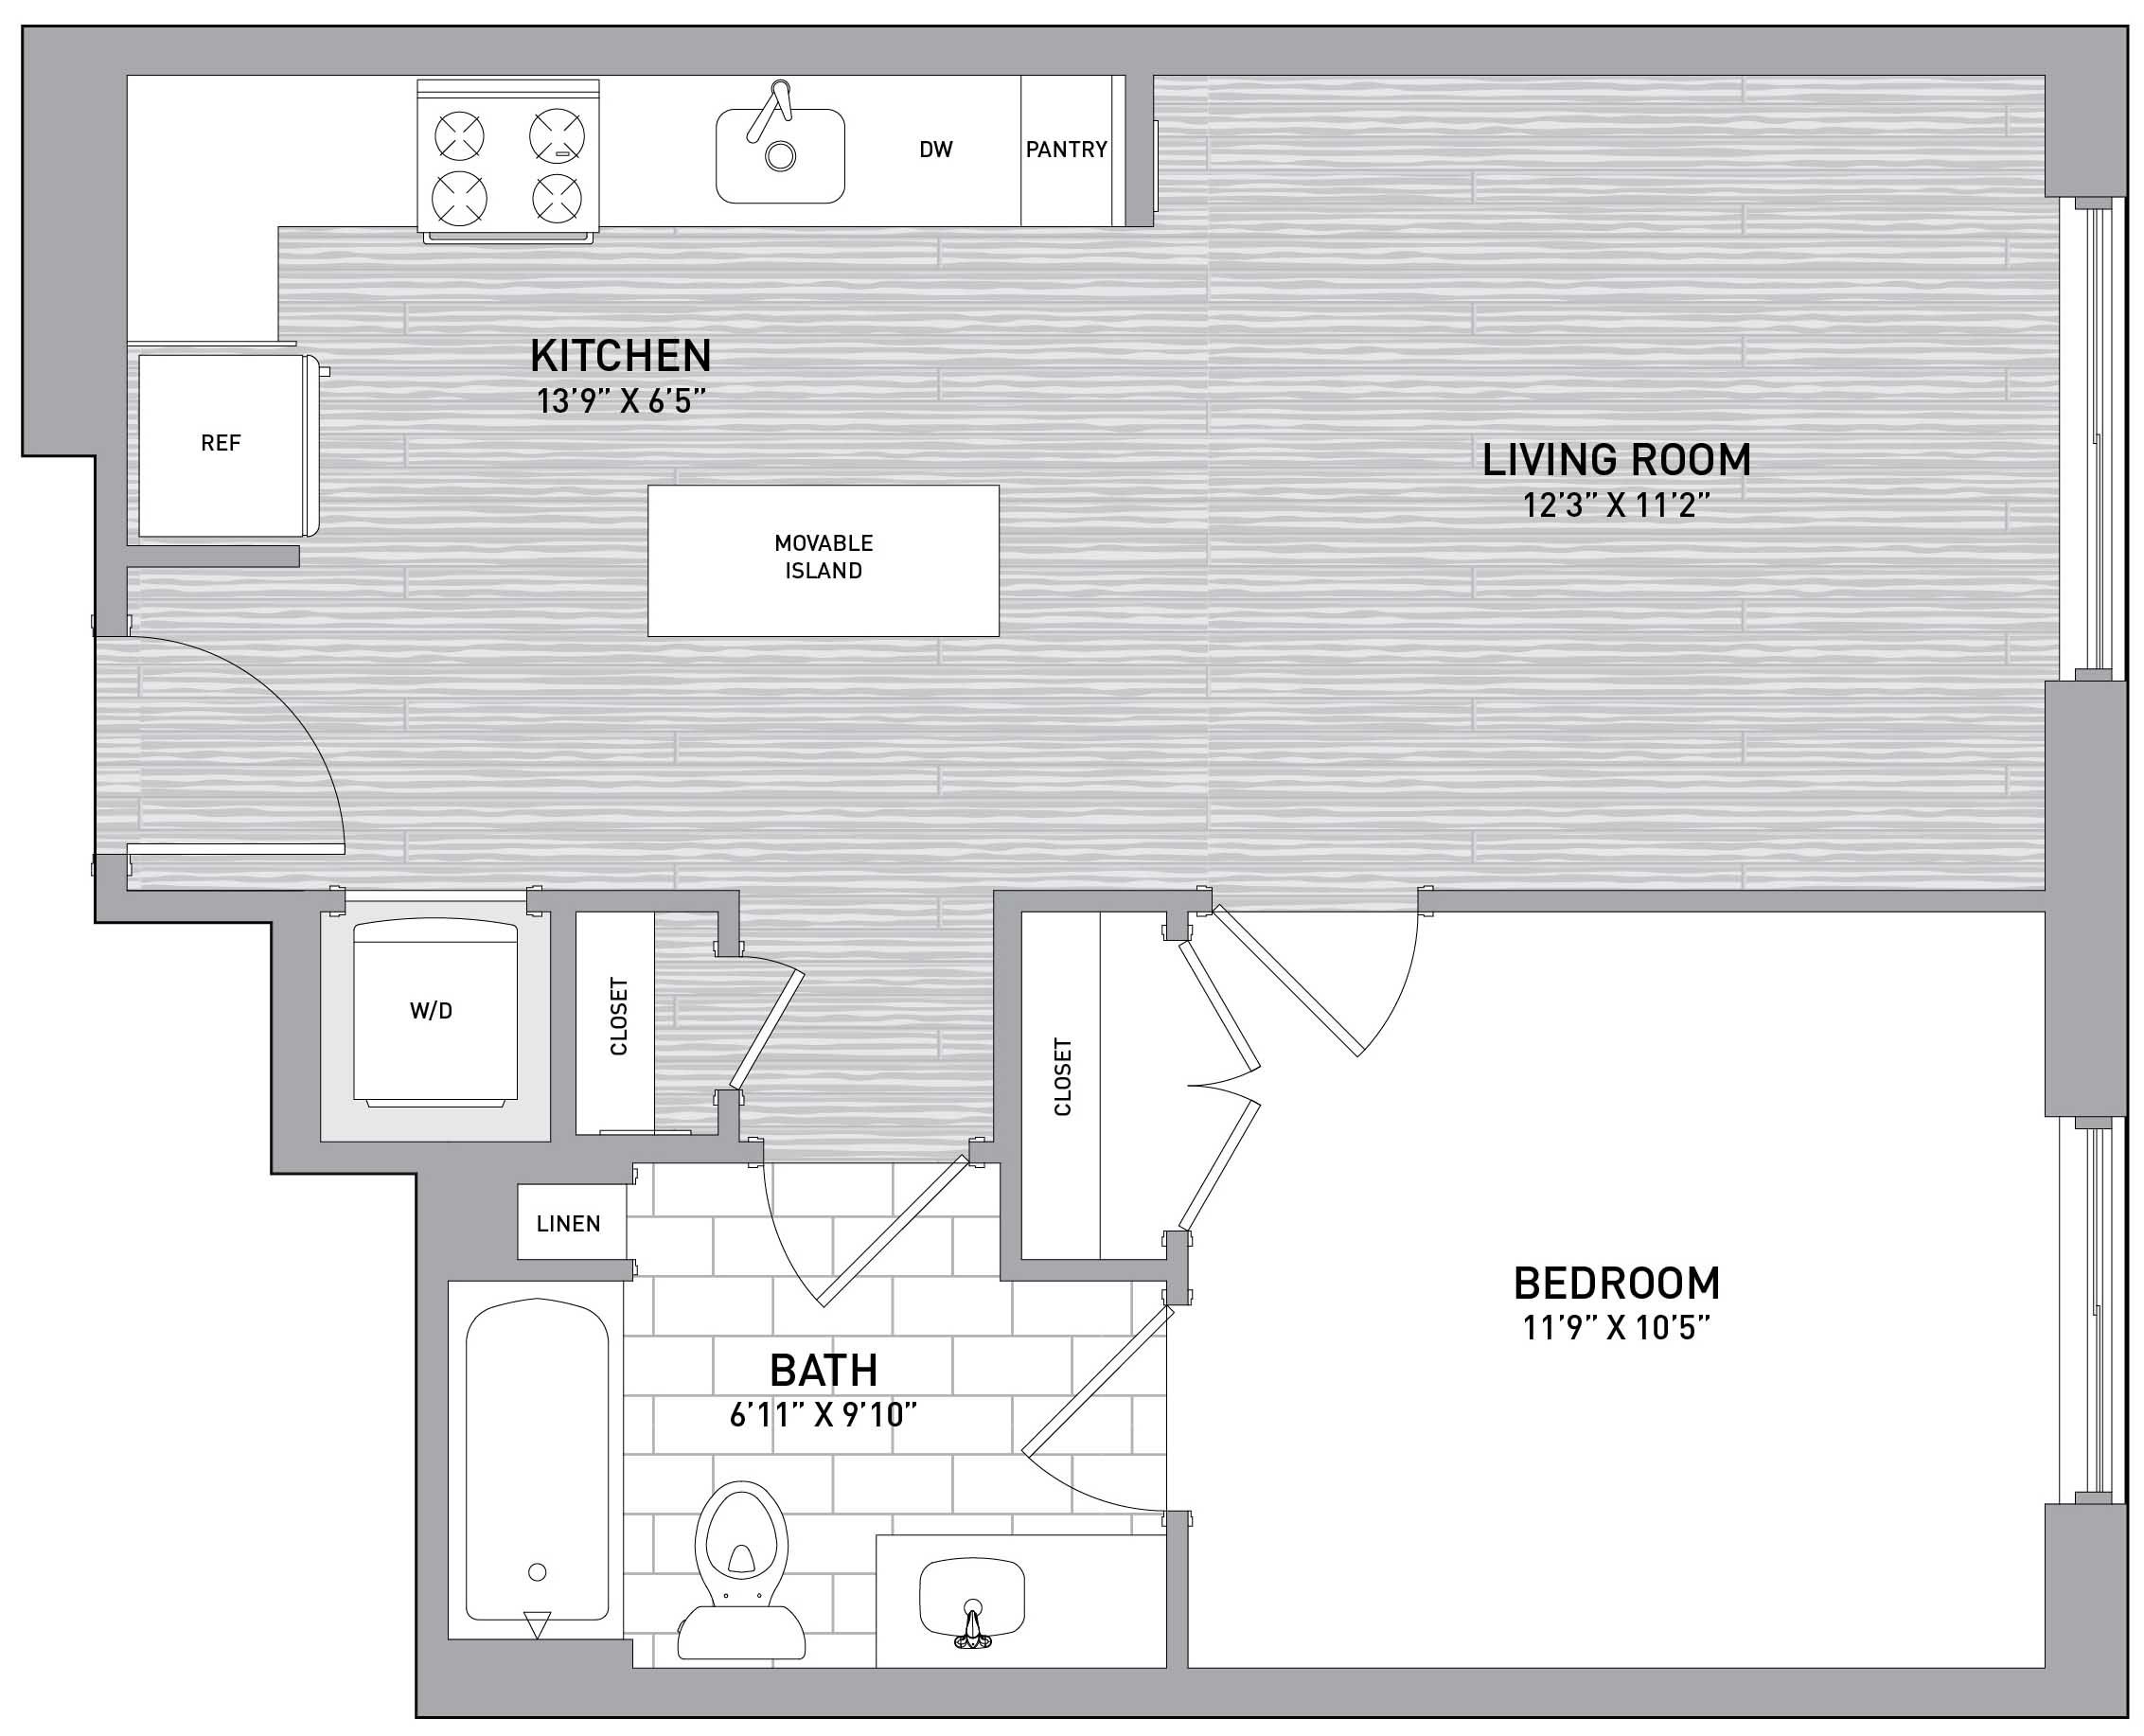 Floorplan Image of unit 151-0112